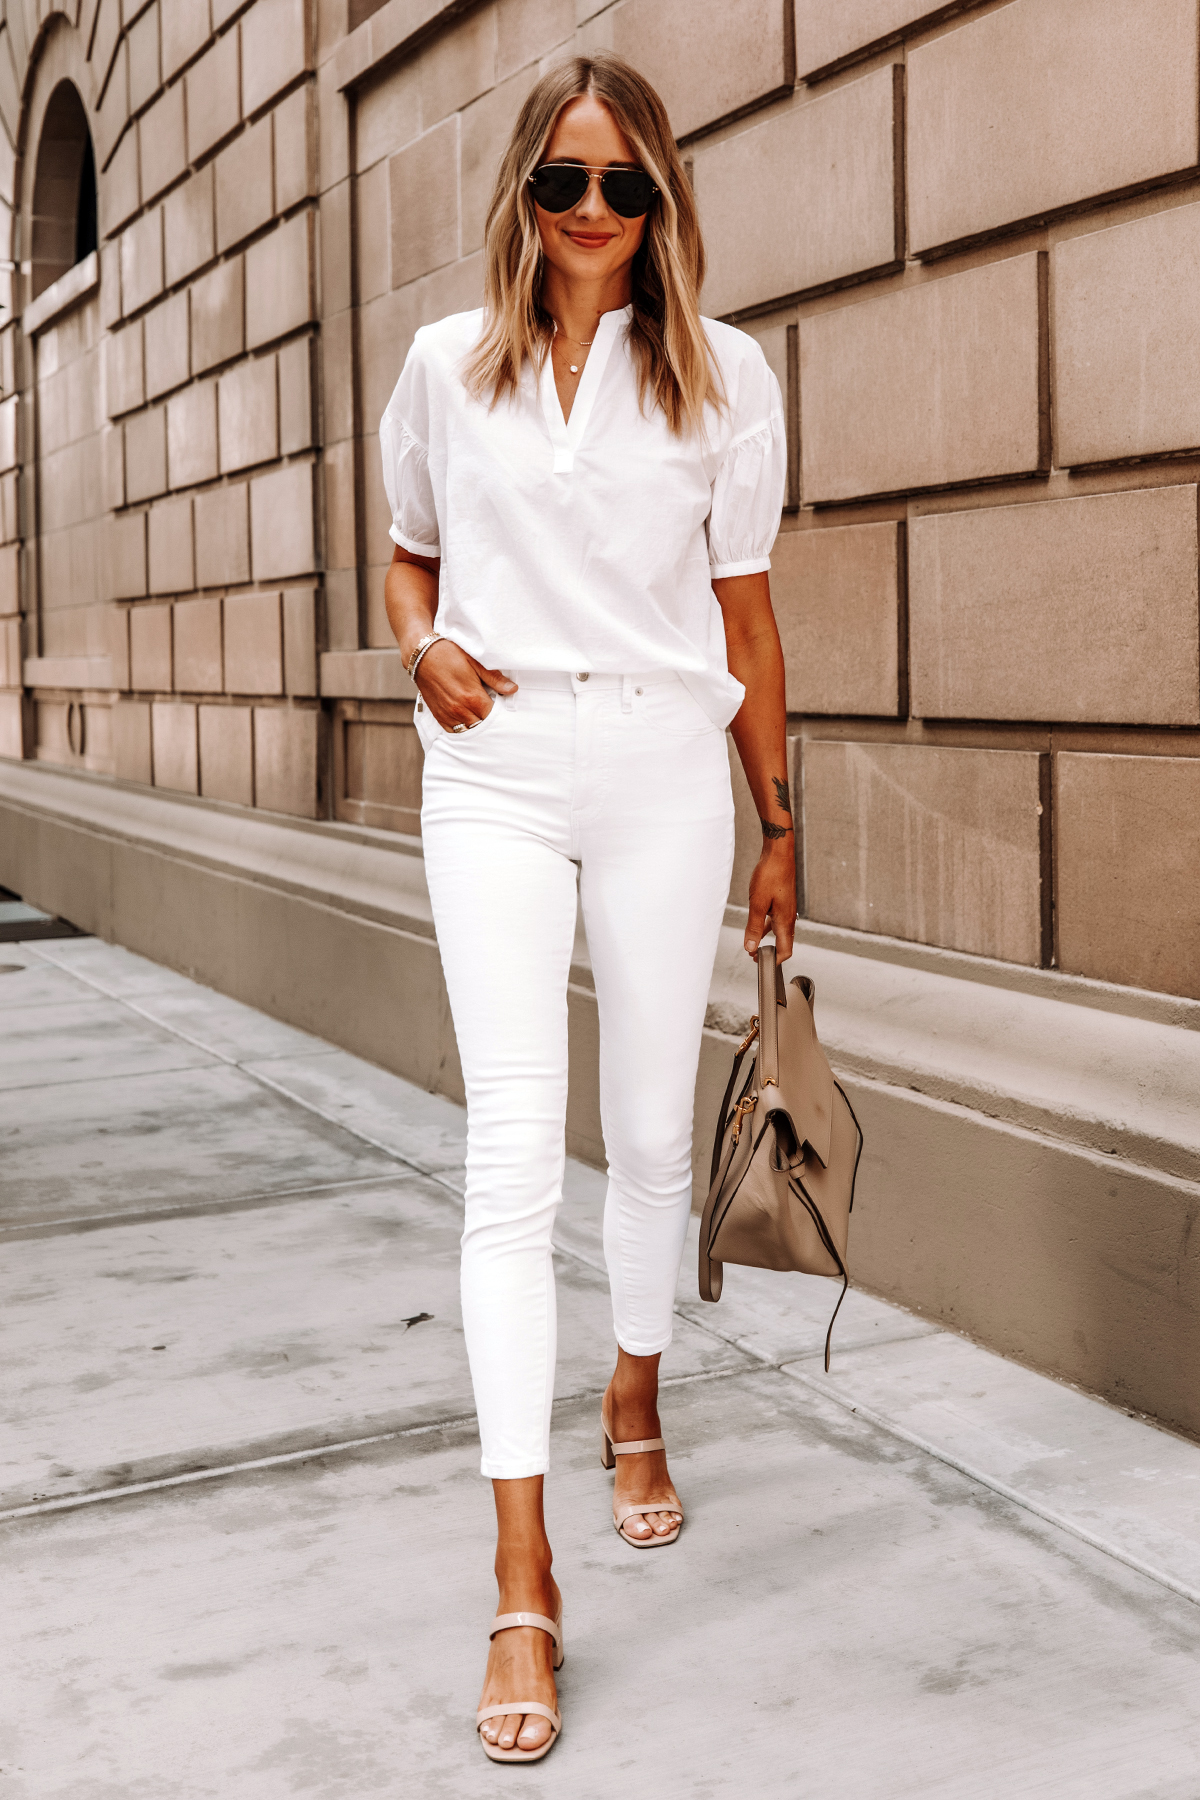 Fashion Jackson Wearing Everlane White Top Everlane White Skinny Jeans Tan Sandals Celine Belt Bag